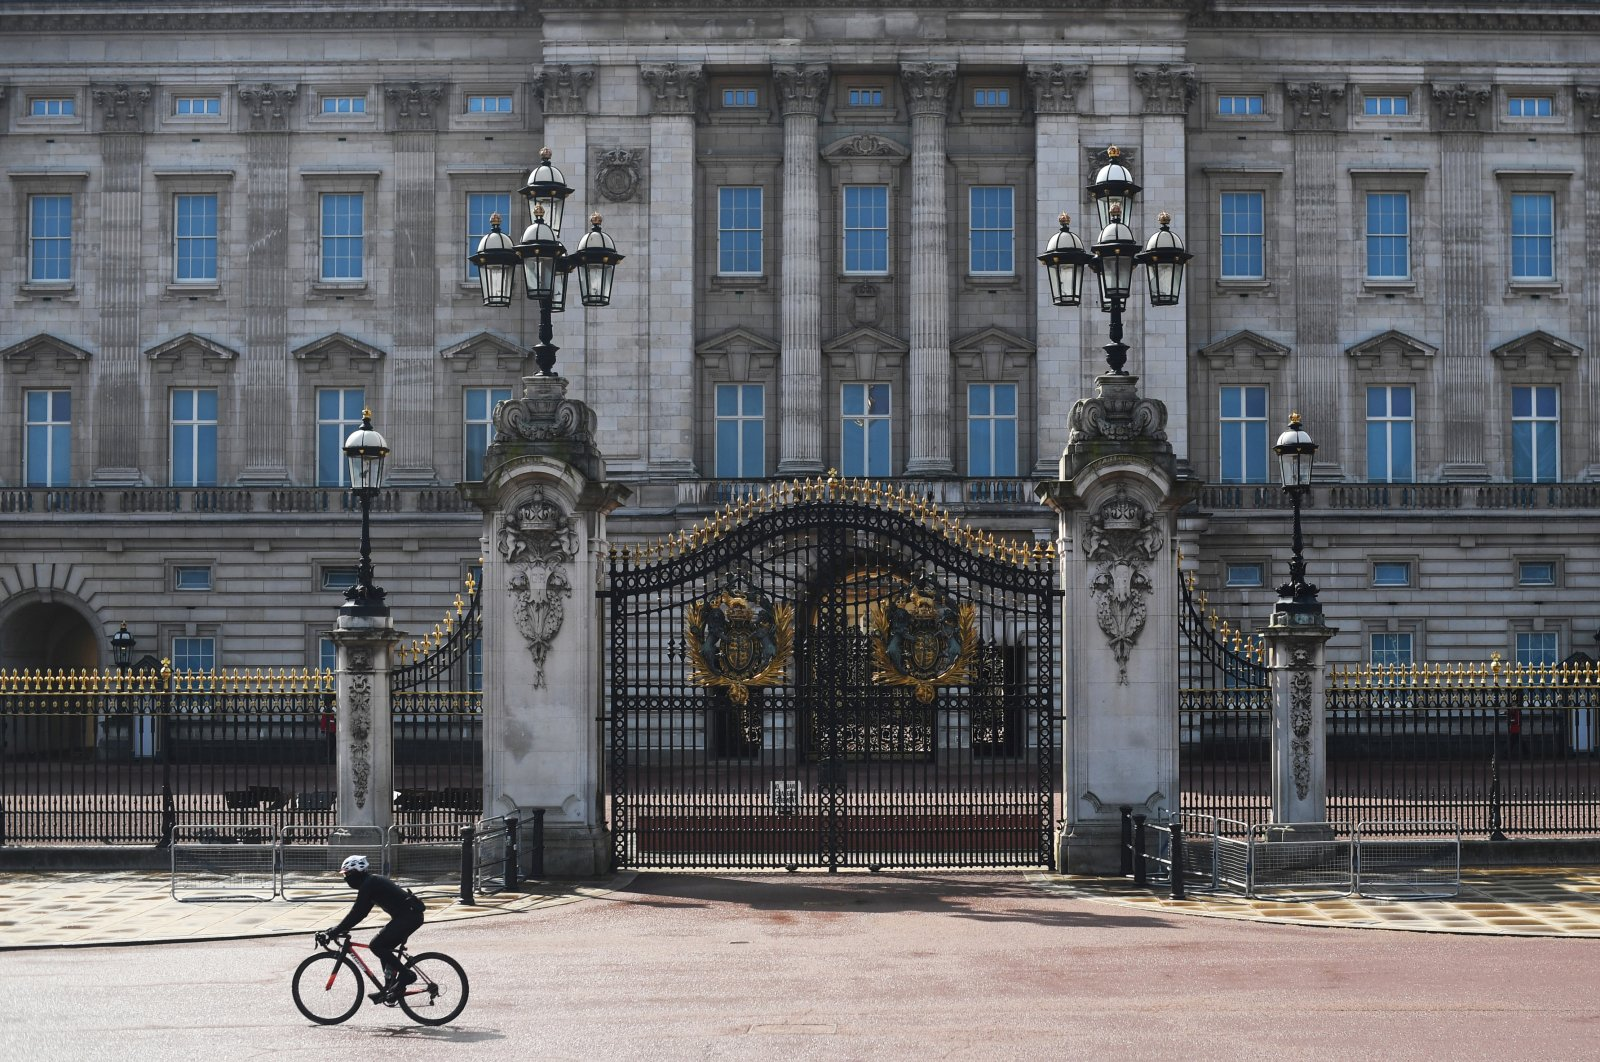 A man rides a bicycle outside Buckingham Palace, London, Britain, March 29, 2020. (REUTERS Photo)